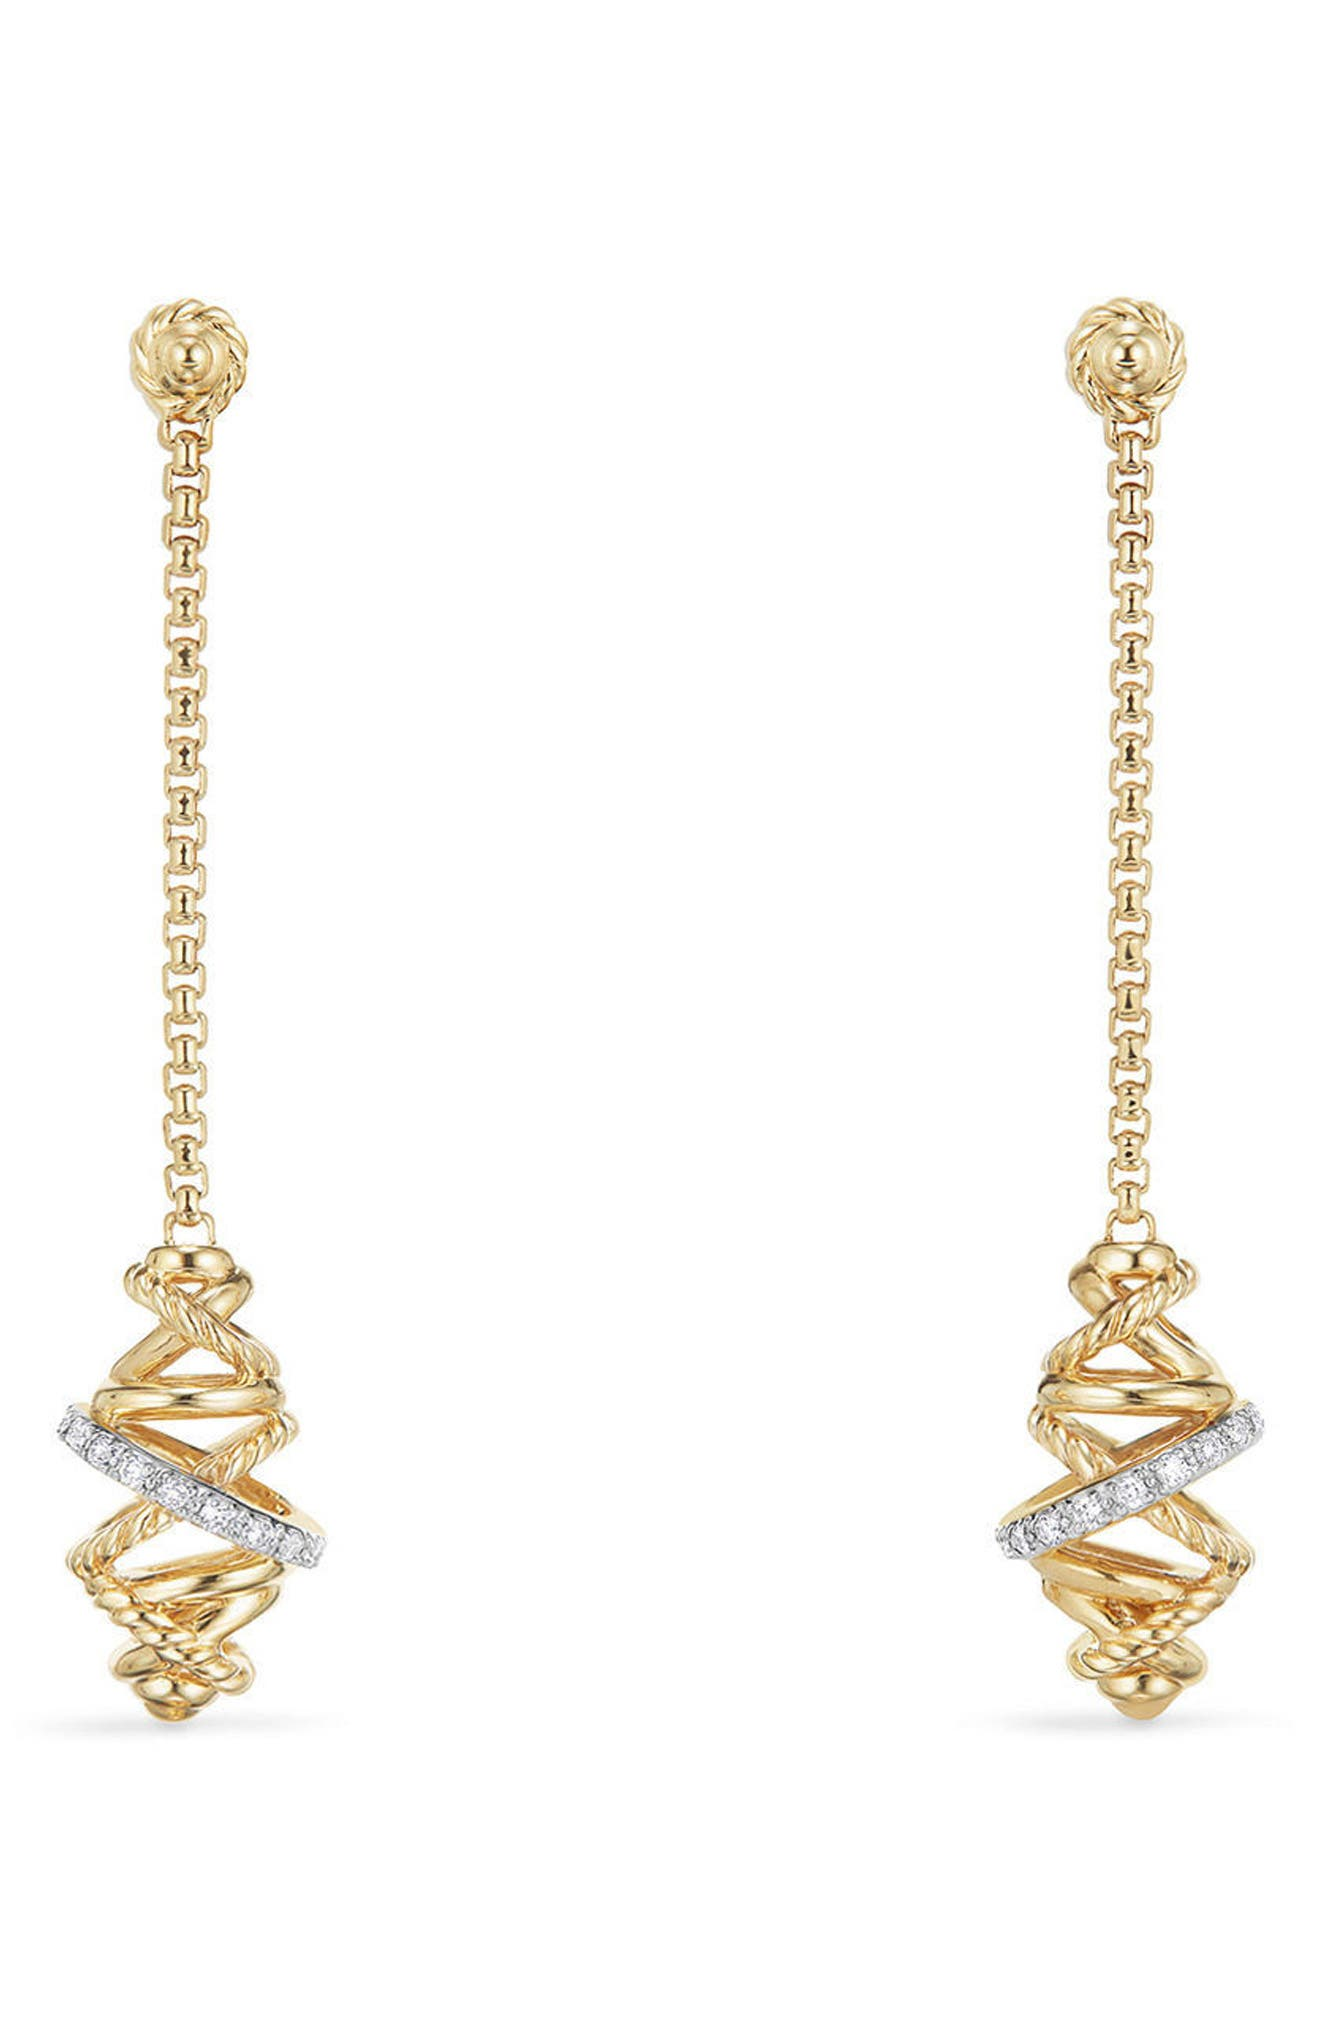 Alternate Image 1 Selected - David Yurman Crossover Chain Drop Earrings with Diamonds in 18K Gold